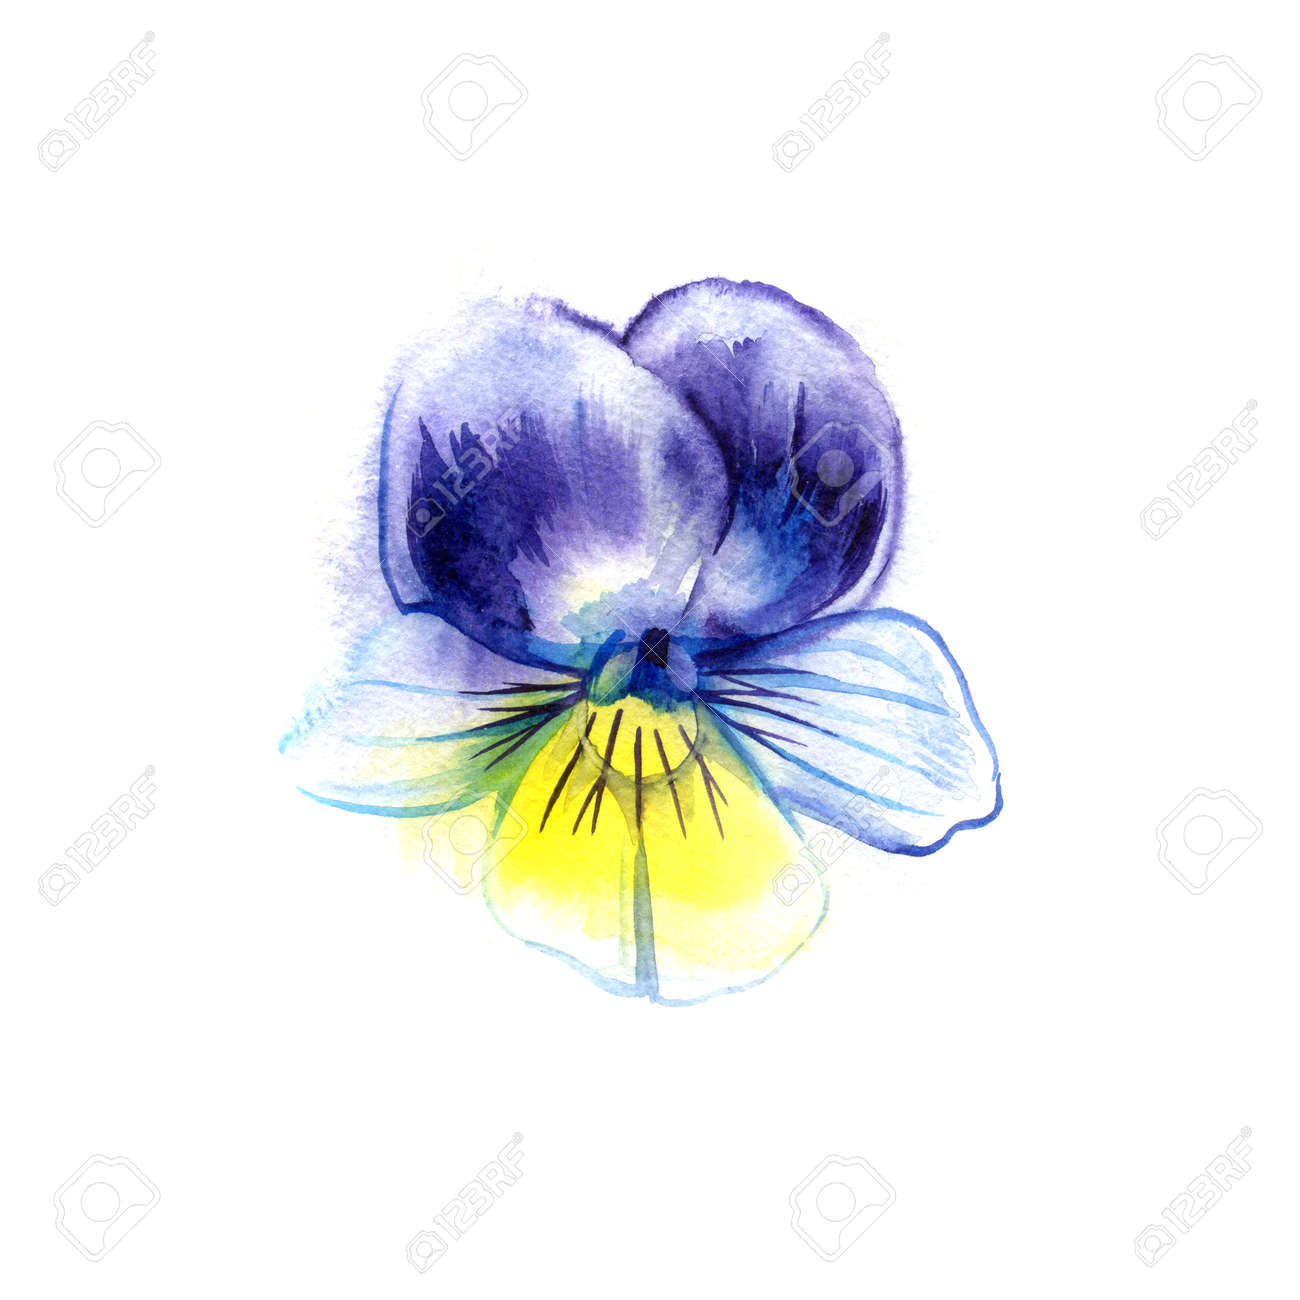 Watercolor Painting Of Pansy Flower Can Be Used As A Greeting